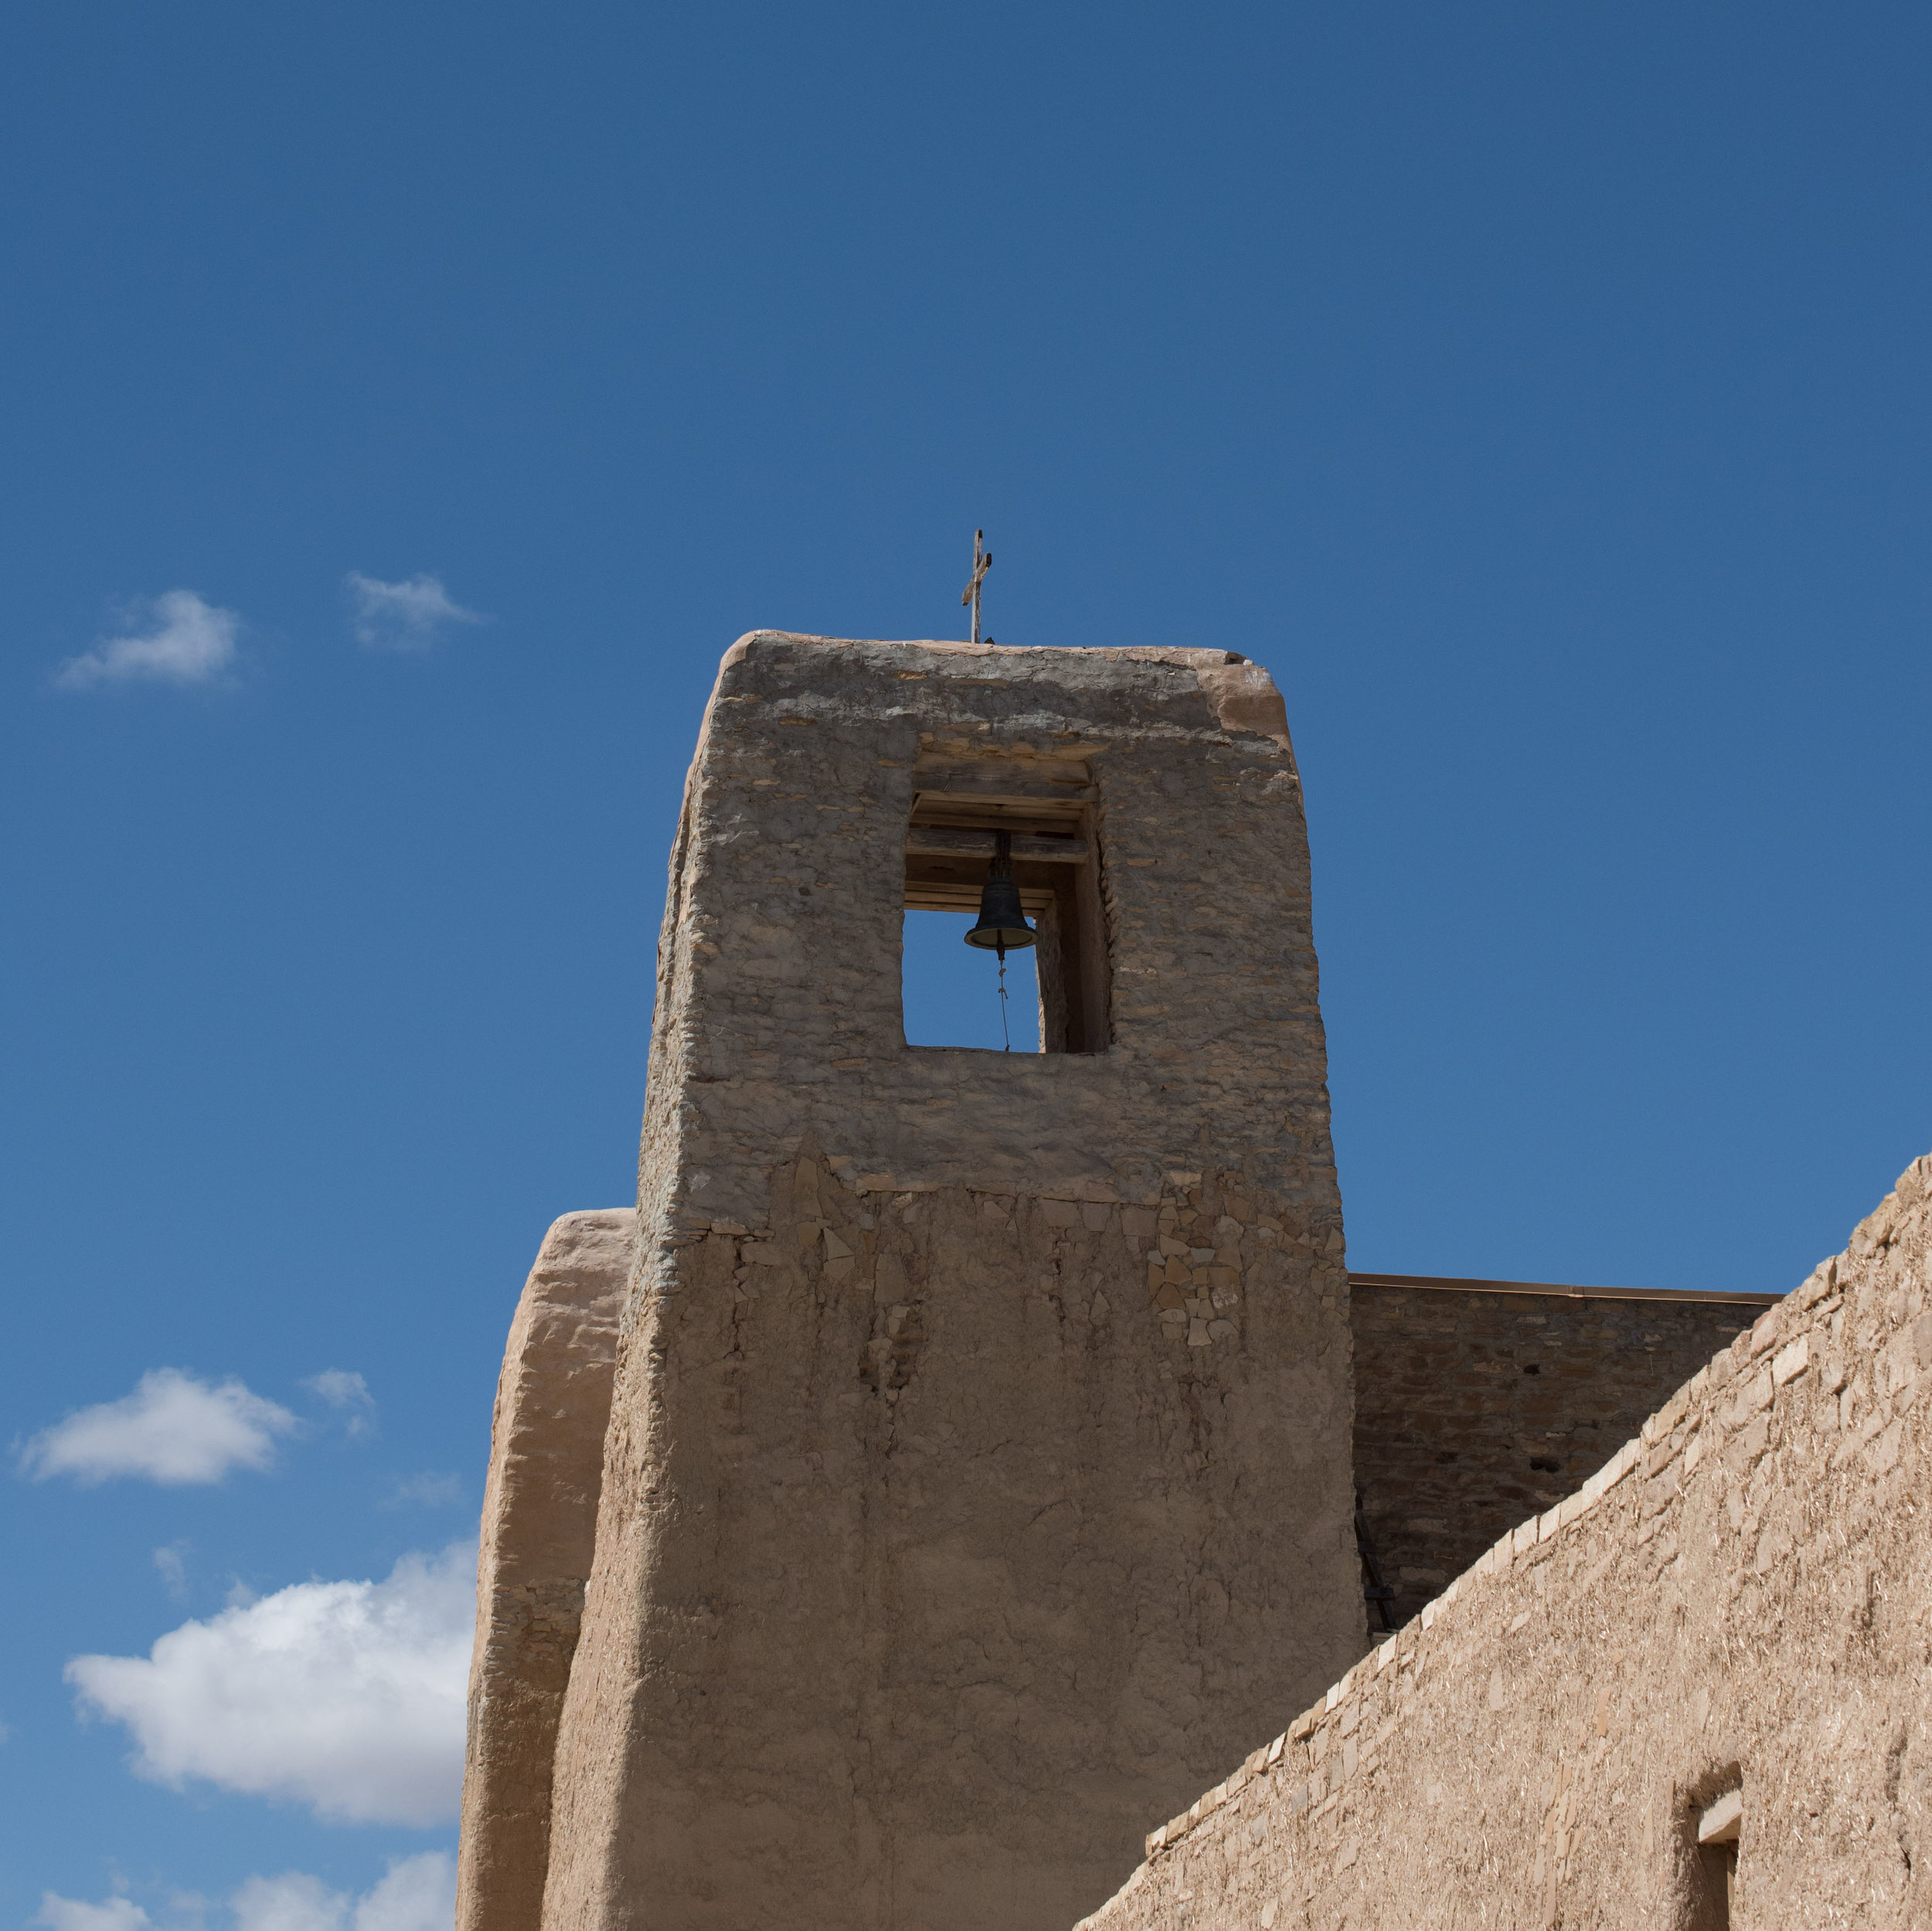 Acoma_ChurchExterior_crAlexGreen.jpg